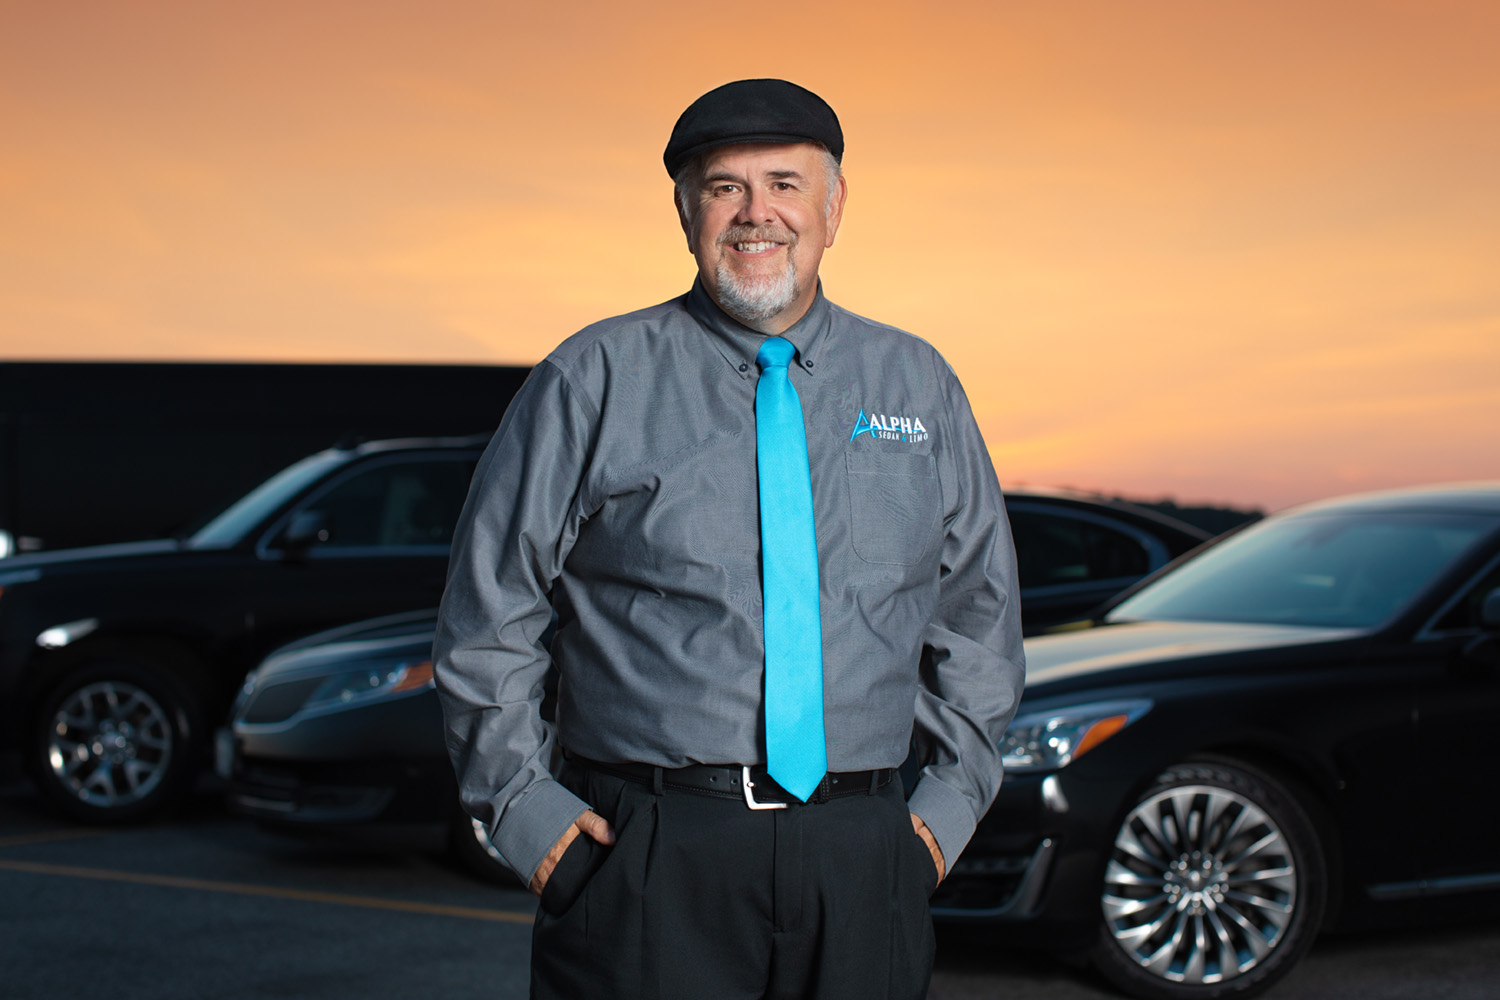 Jim Harris of Alpha Sedan & Limo | Portrait by Kelly Heck Photography